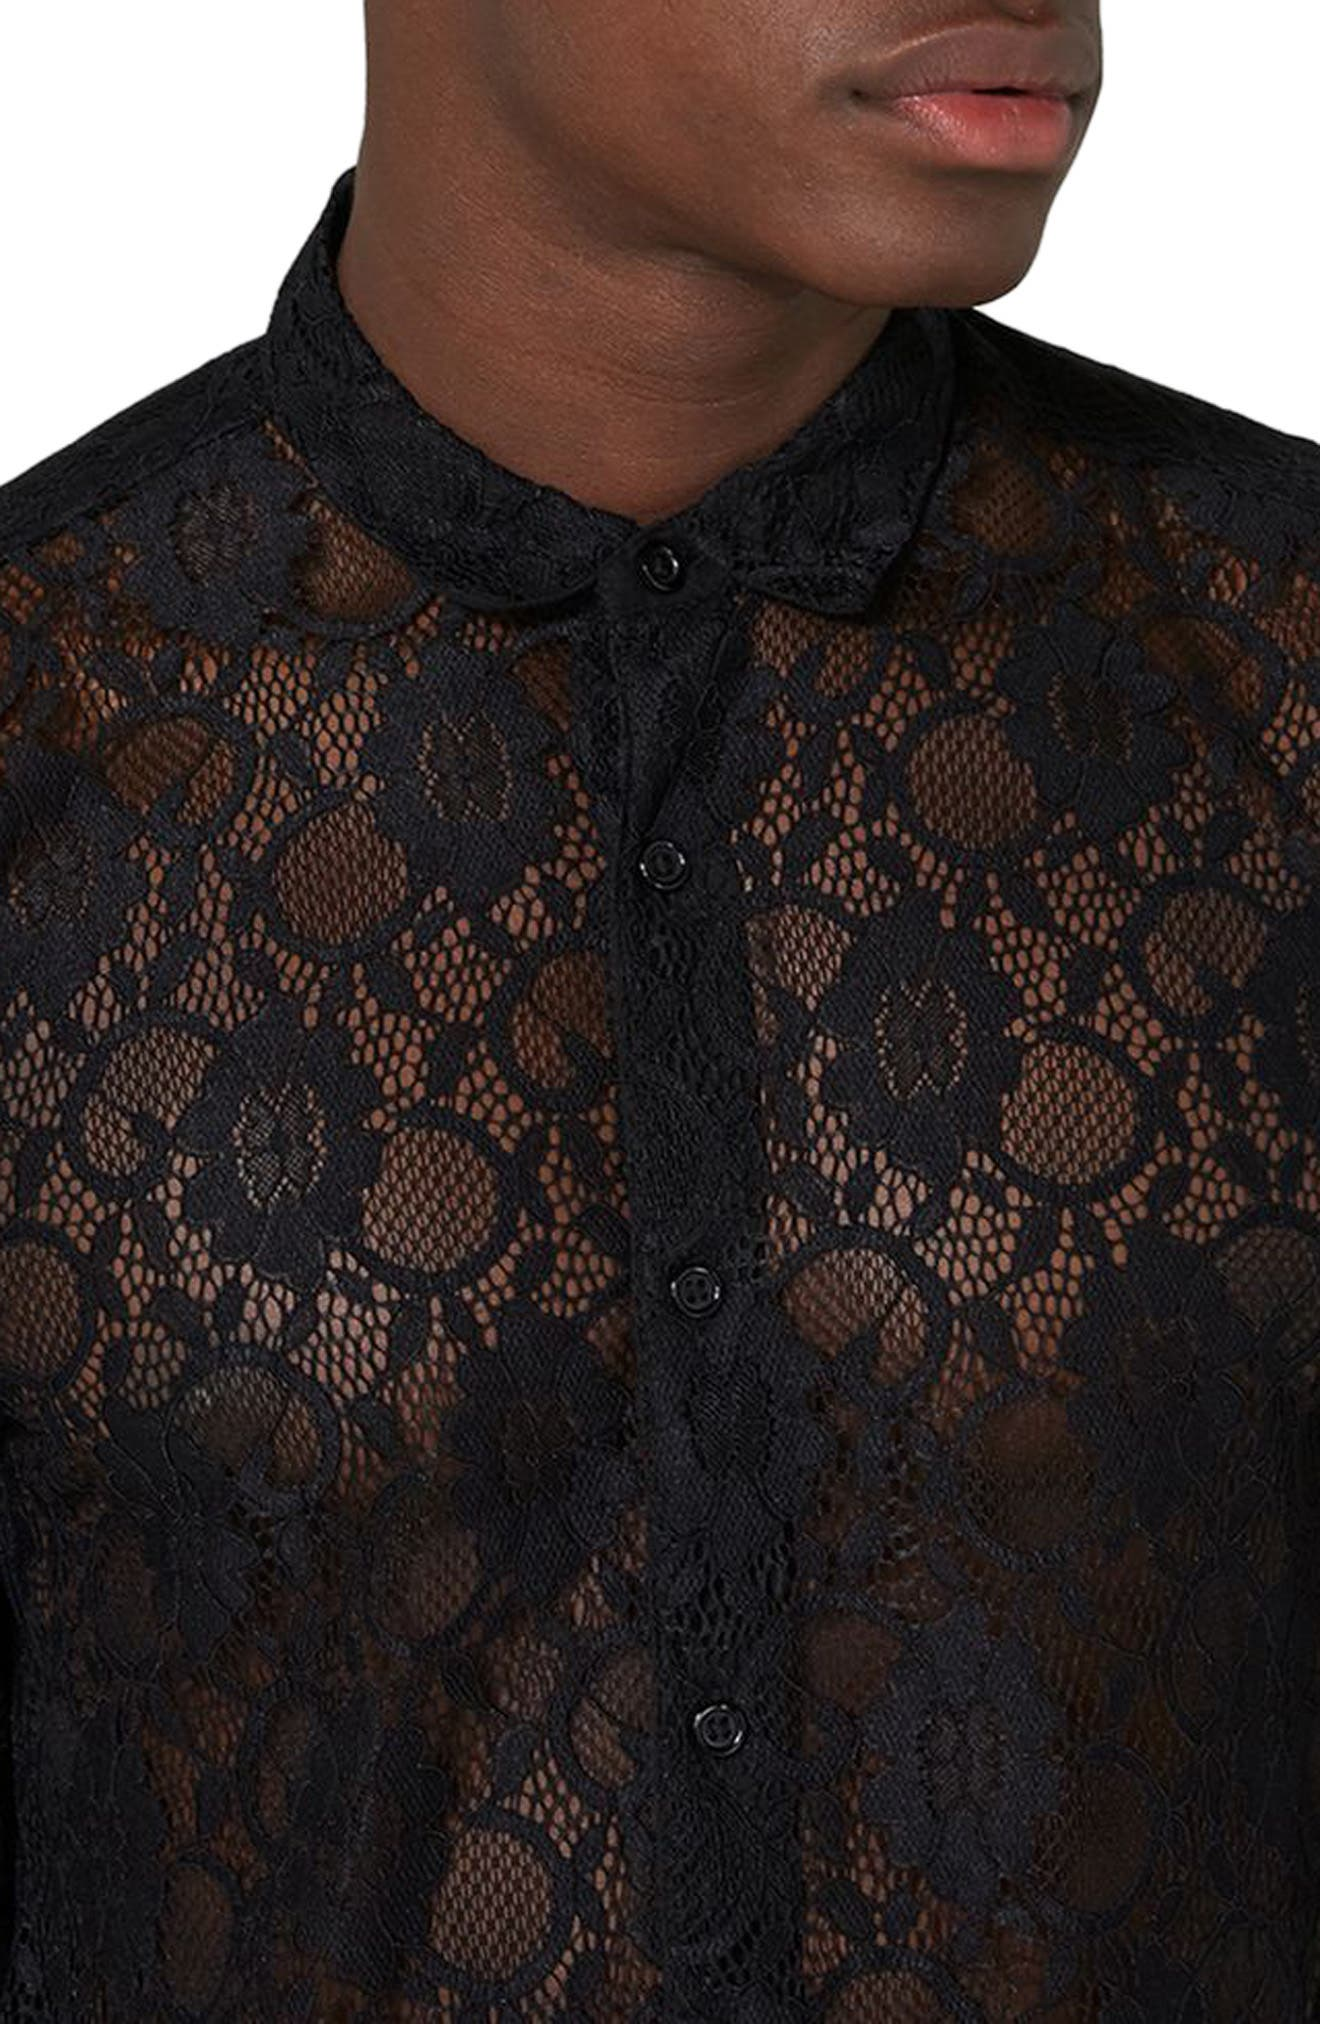 Muscle Fit Sheer Lace Shirt,                             Alternate thumbnail 3, color,                             001